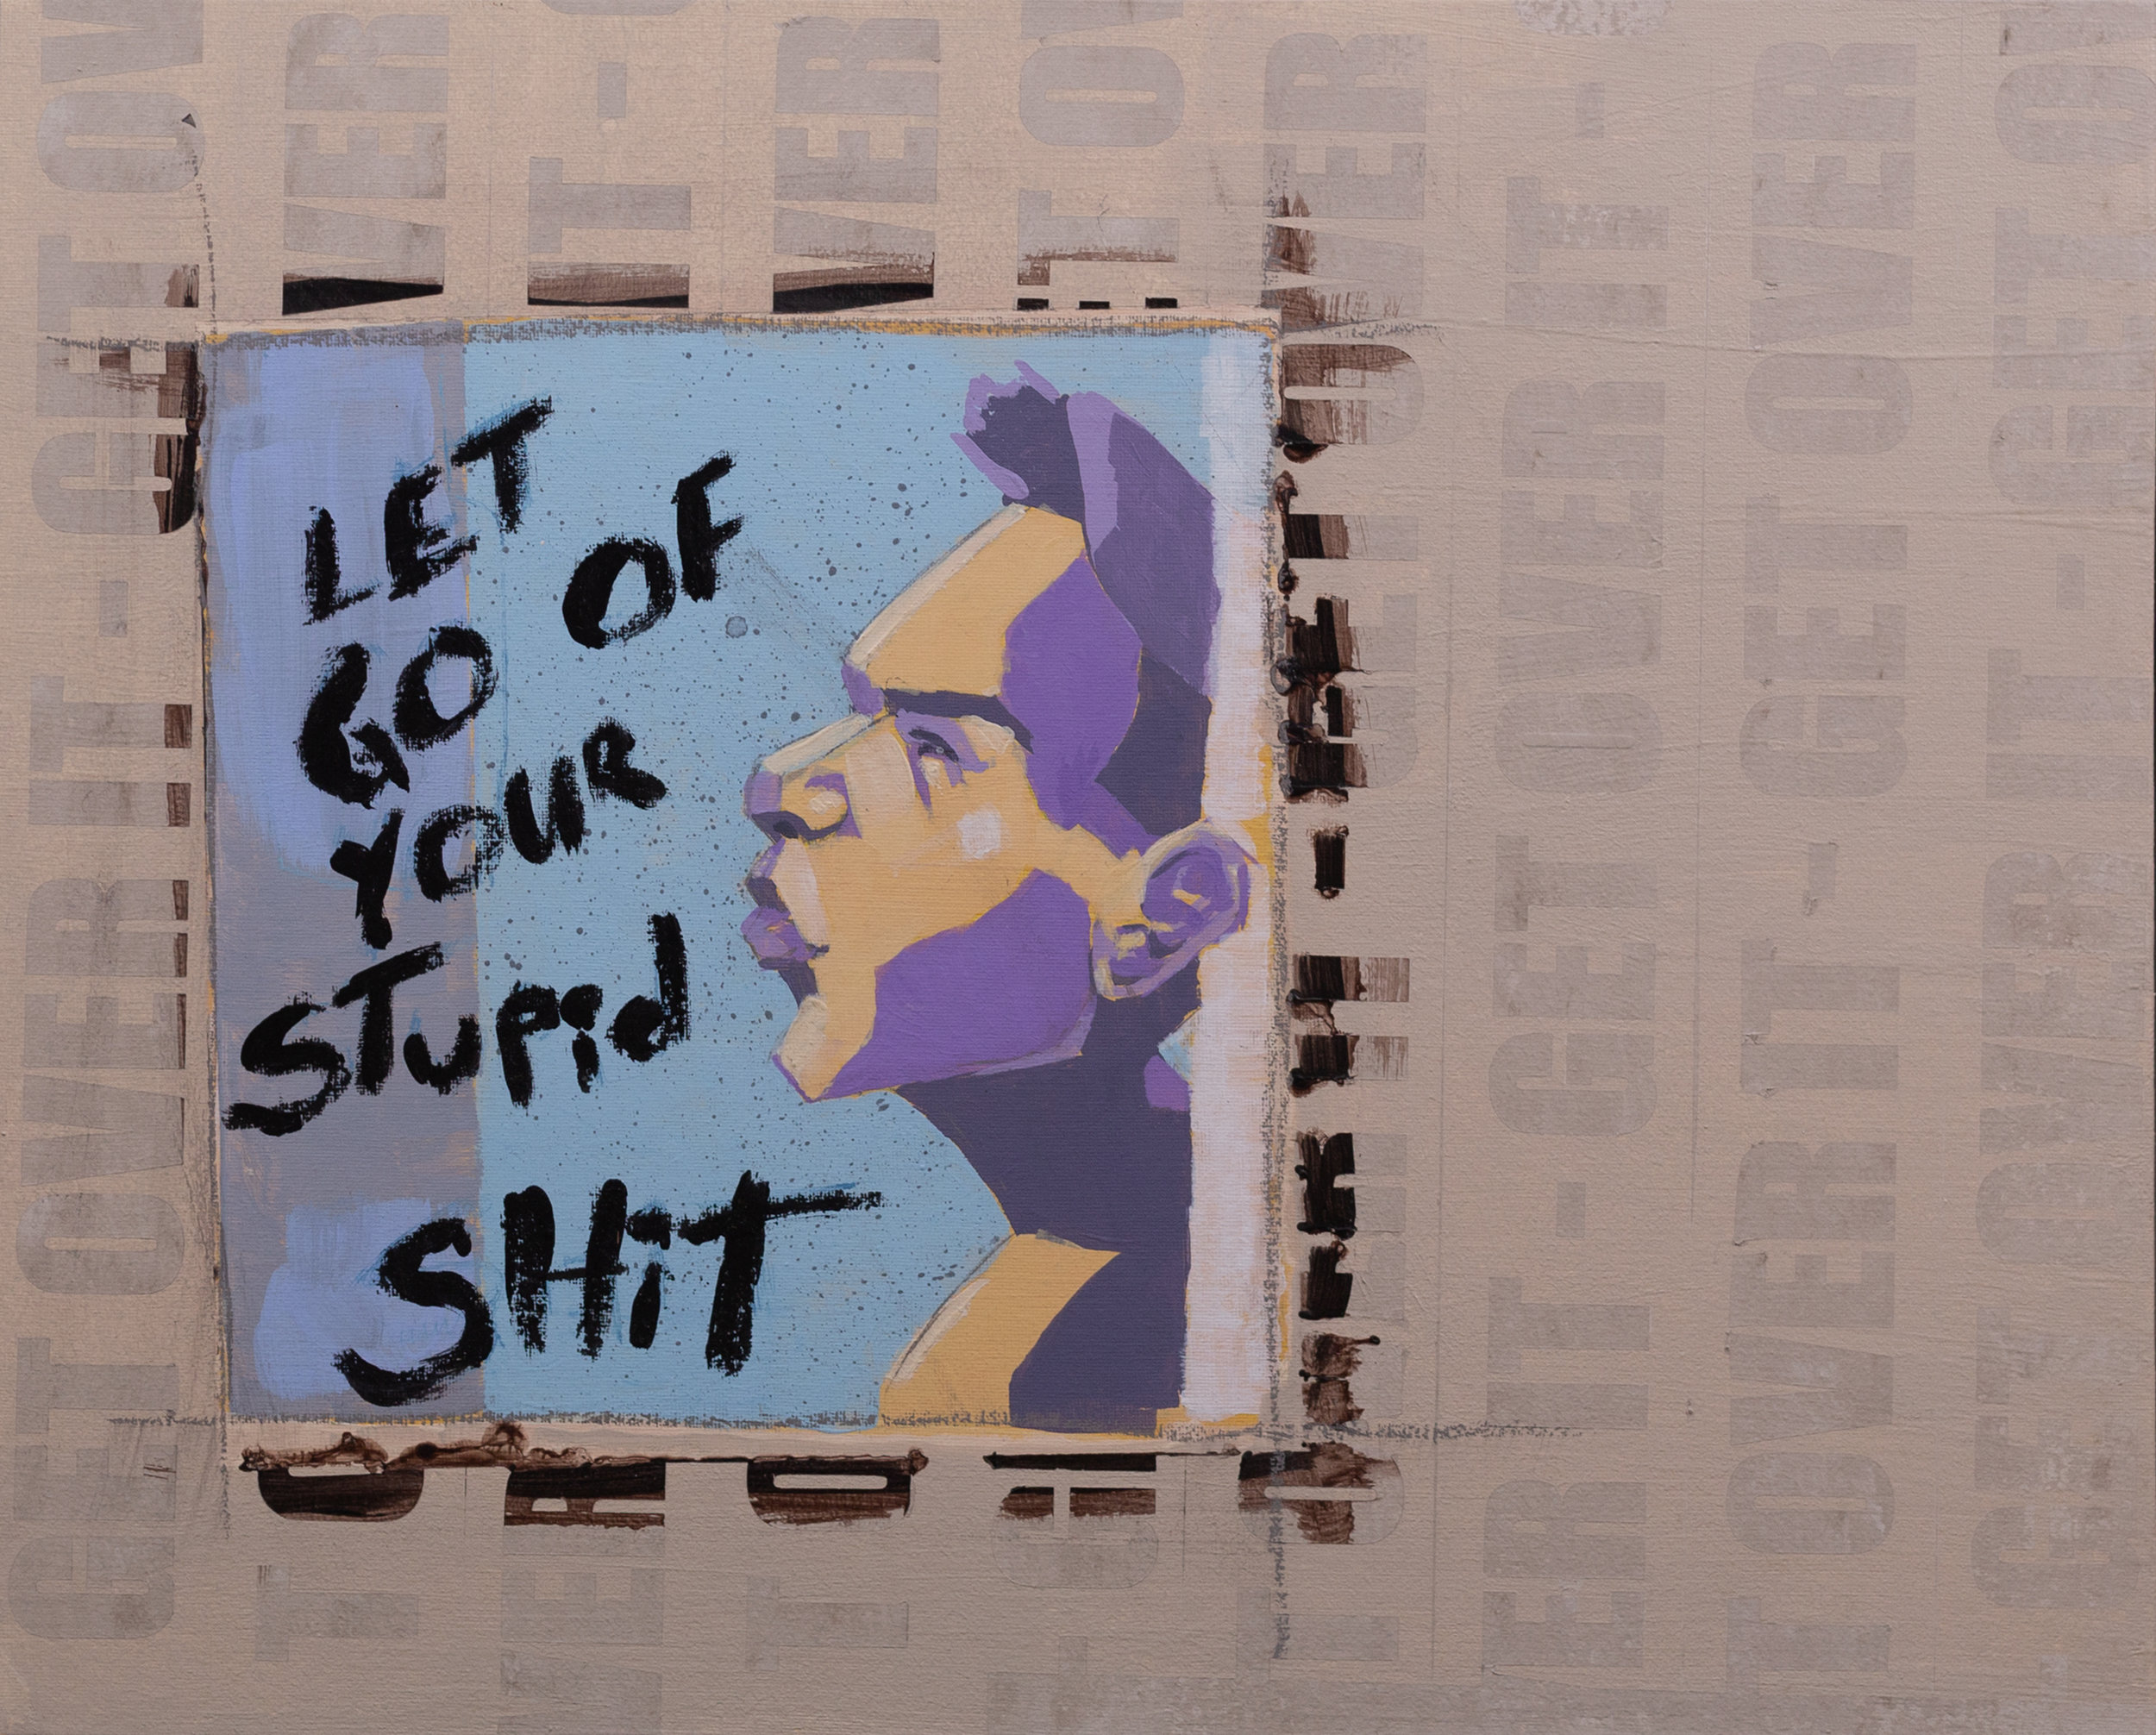 Let Go of Your Stupid Shit